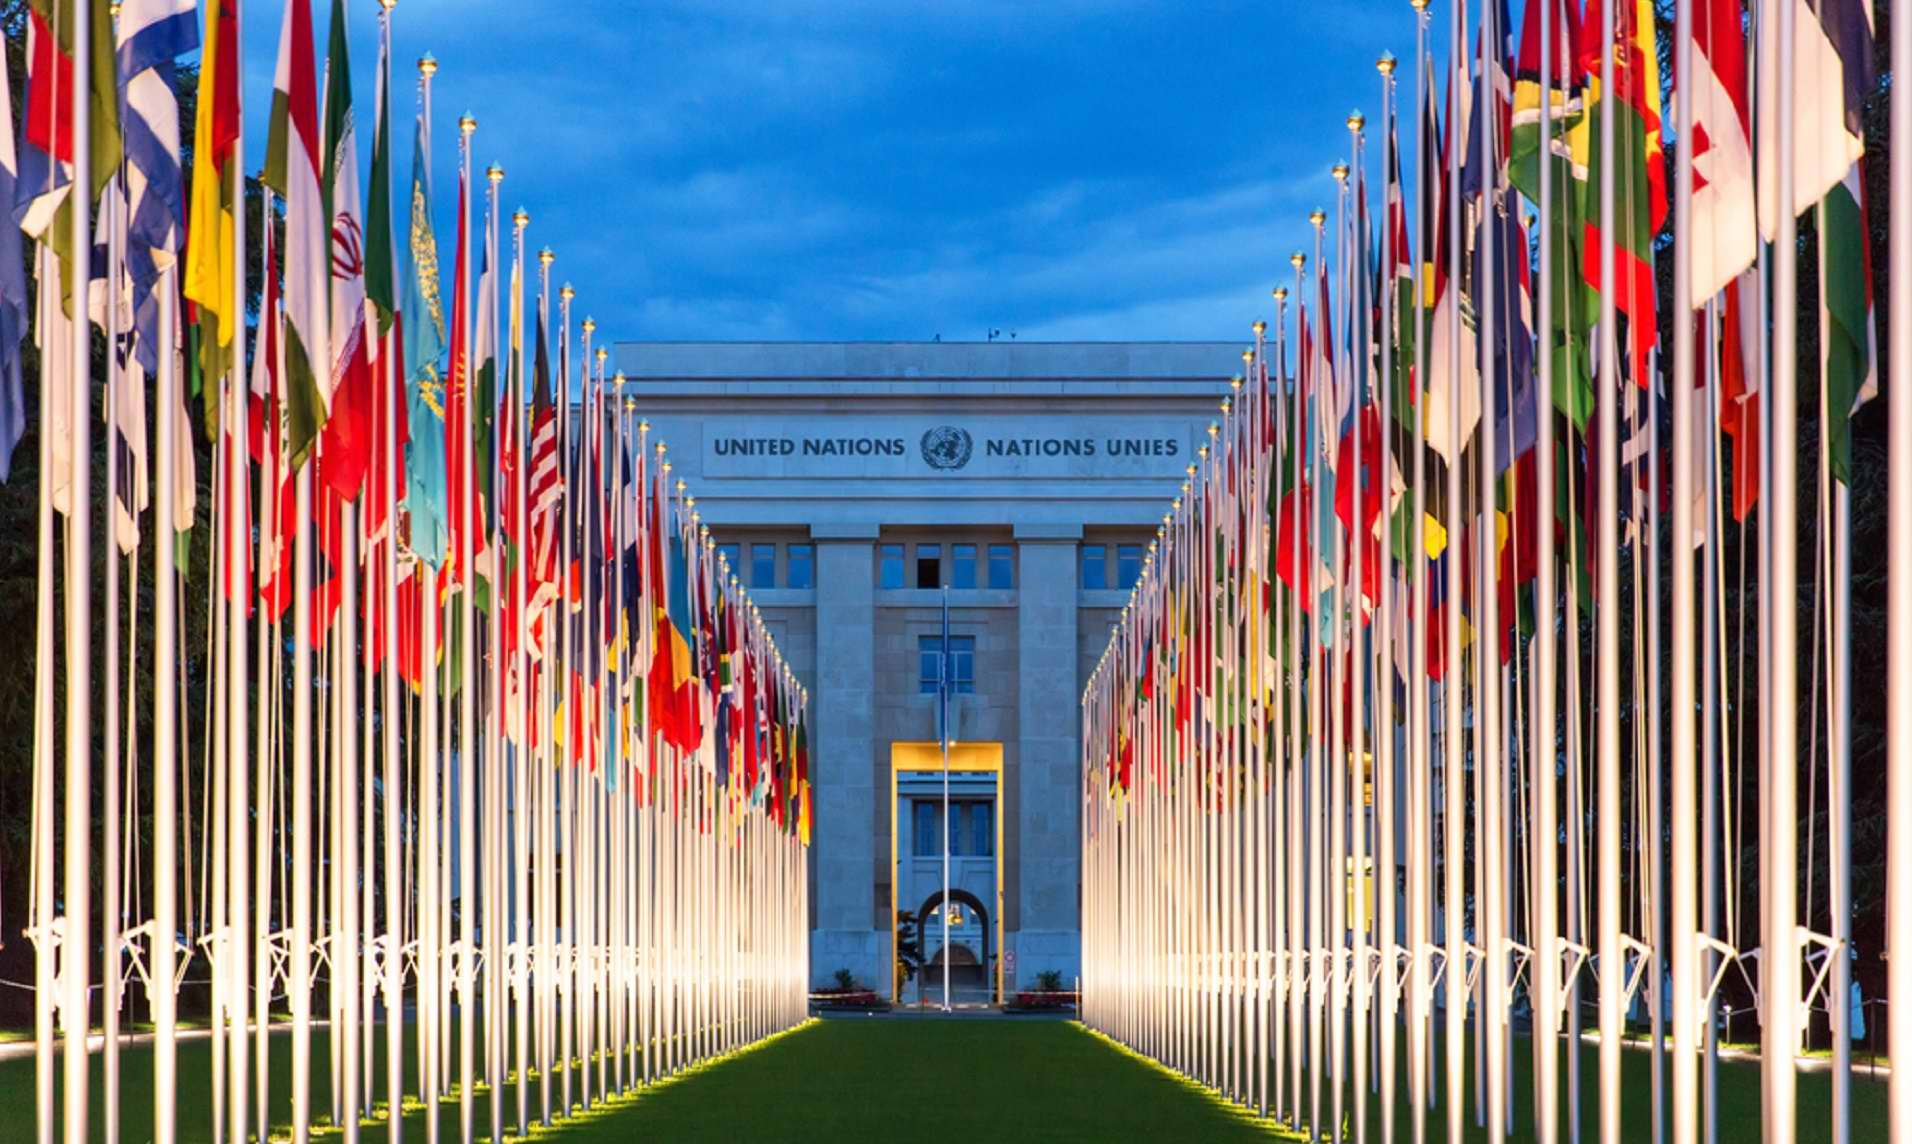 L'Académie Internationale de la Paix aux Nations unies